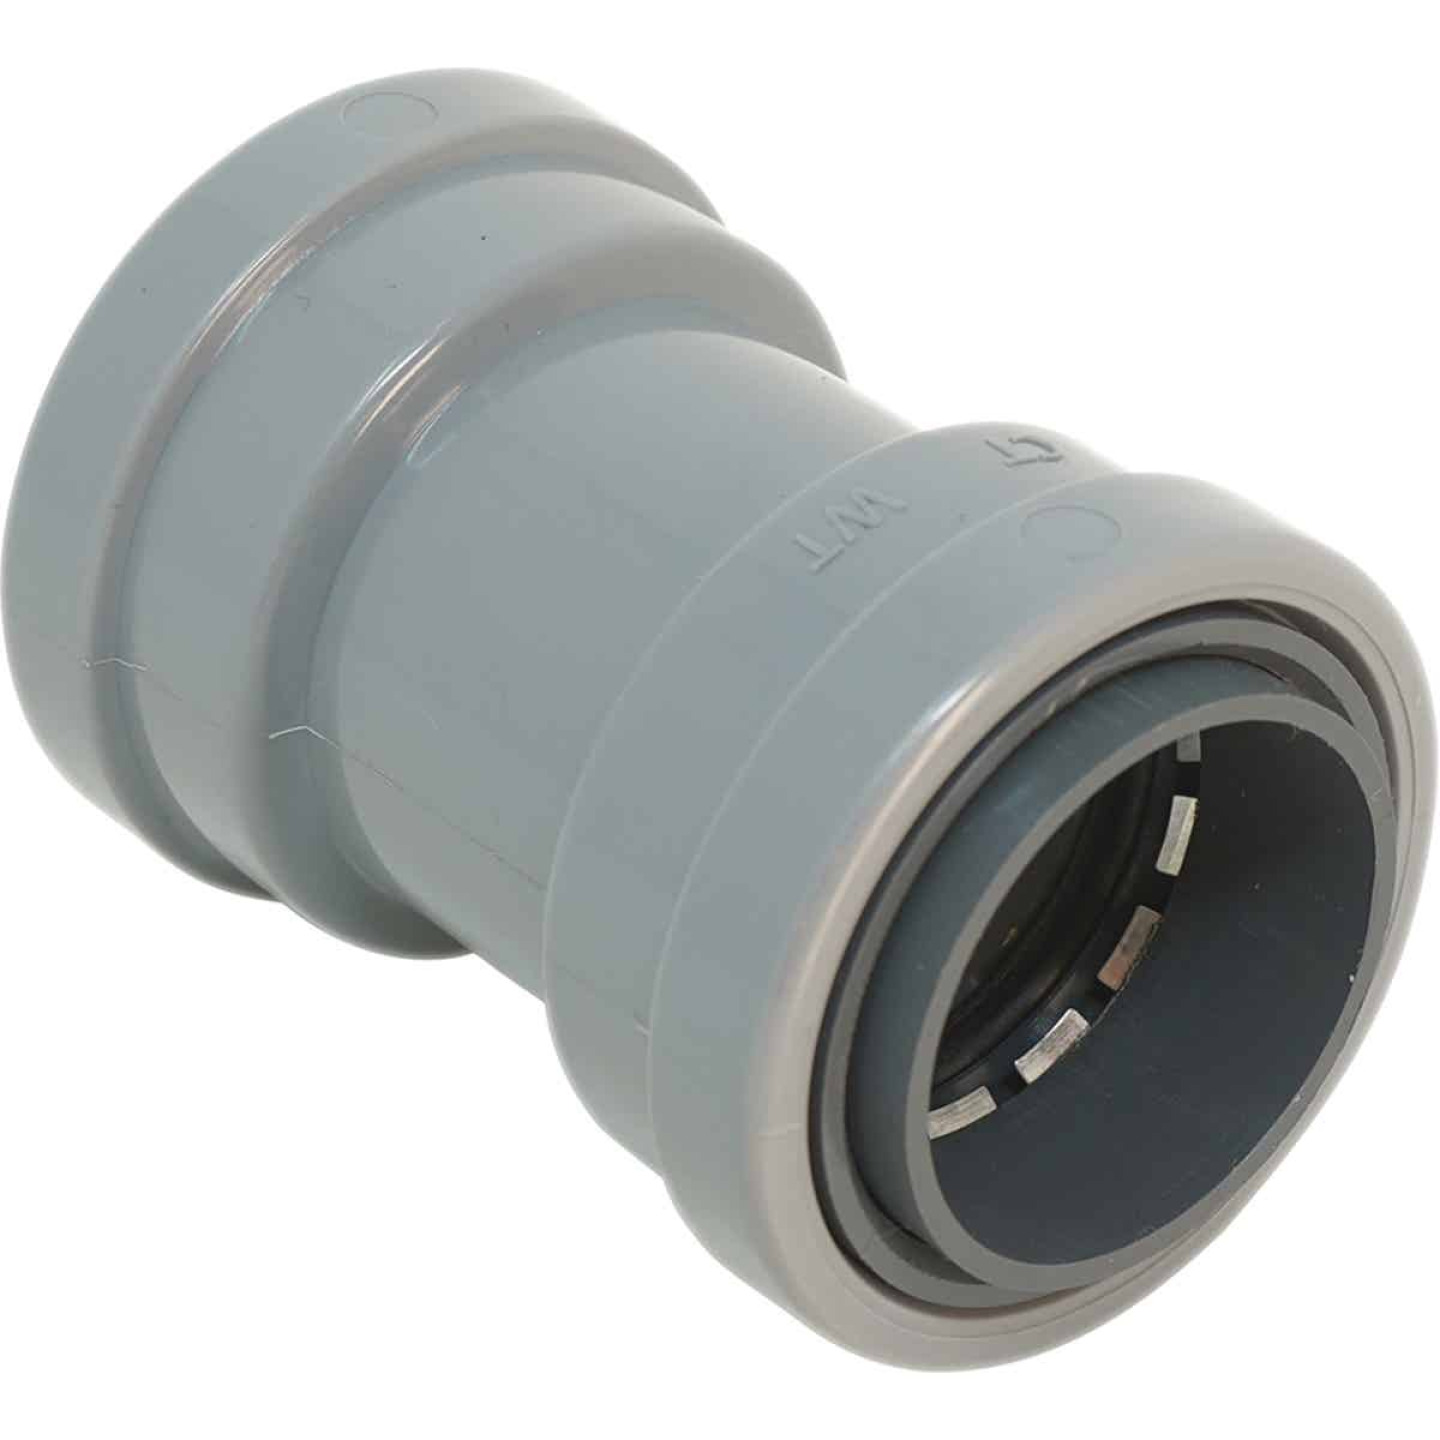 Southwire SimPush 1/2 In. PVC-CIC Push-To-Install Conduit Coupling Image 1